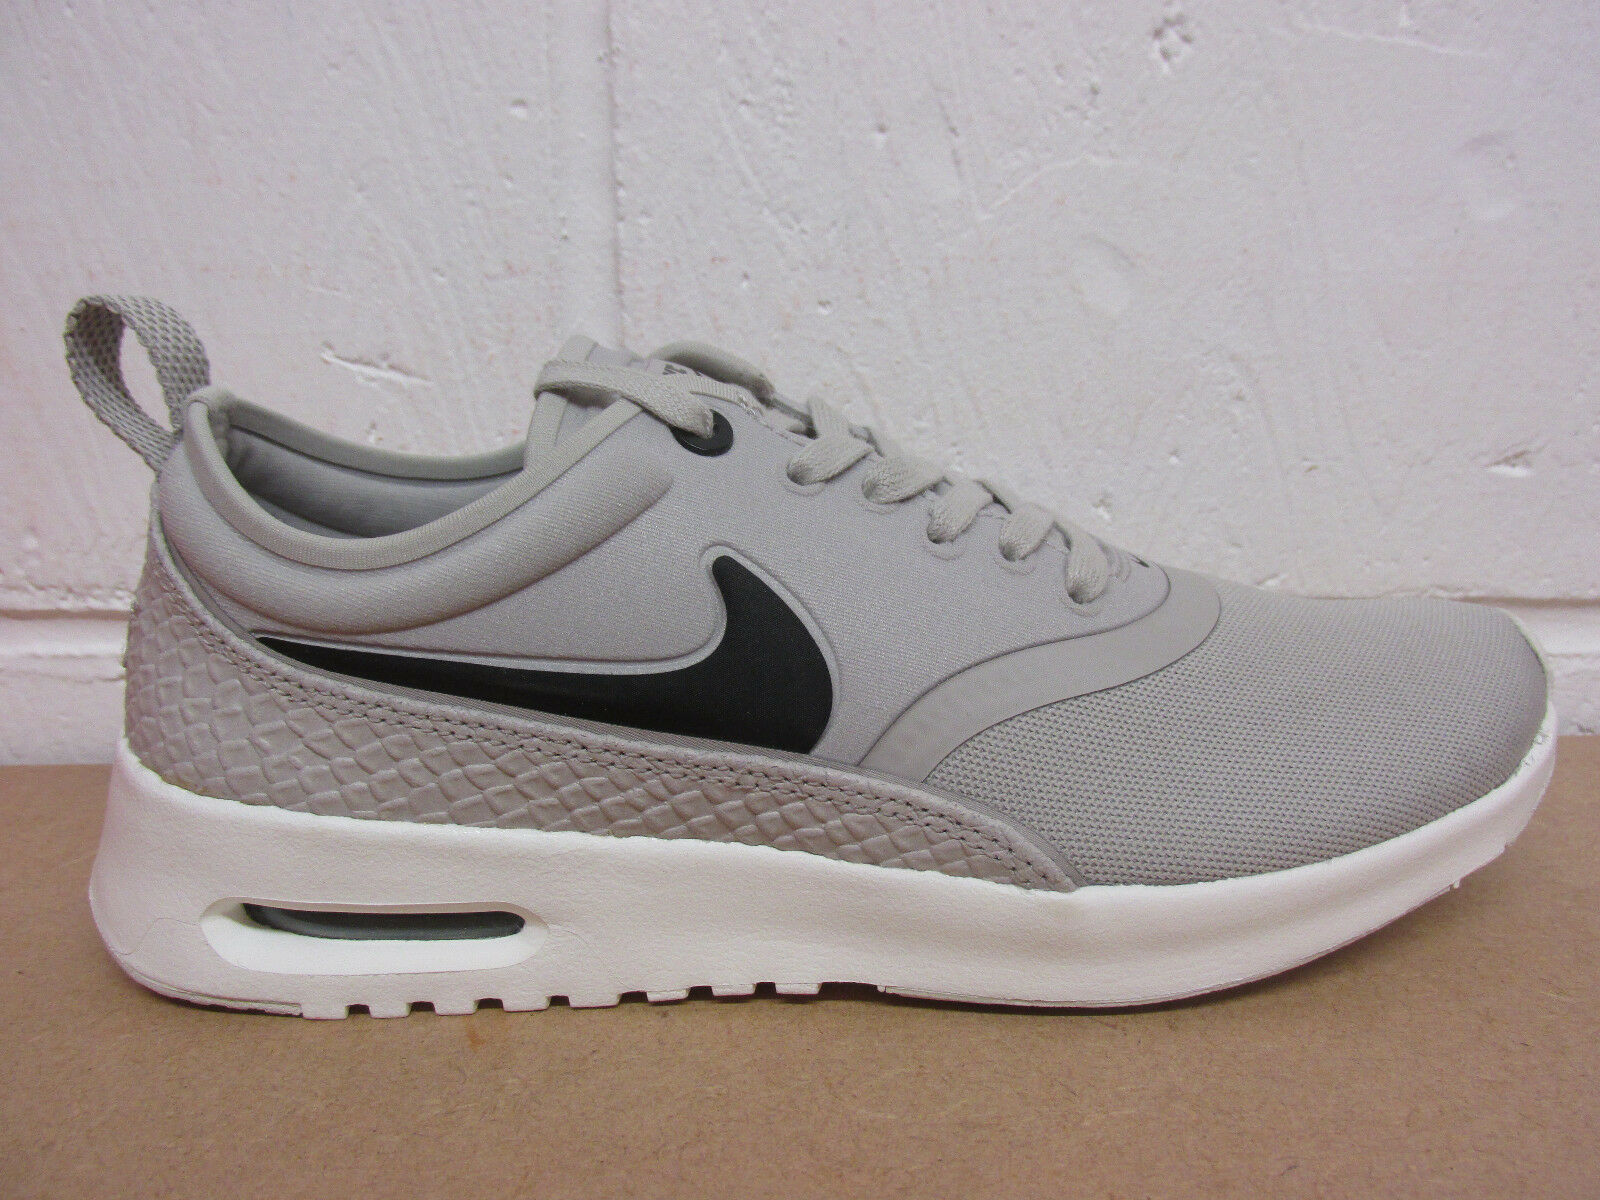 Nike Womens Air Max Thea Ultra PRM Running Trainers Trainers Trainers 848279 002 Sneakers Shoes b6fb63